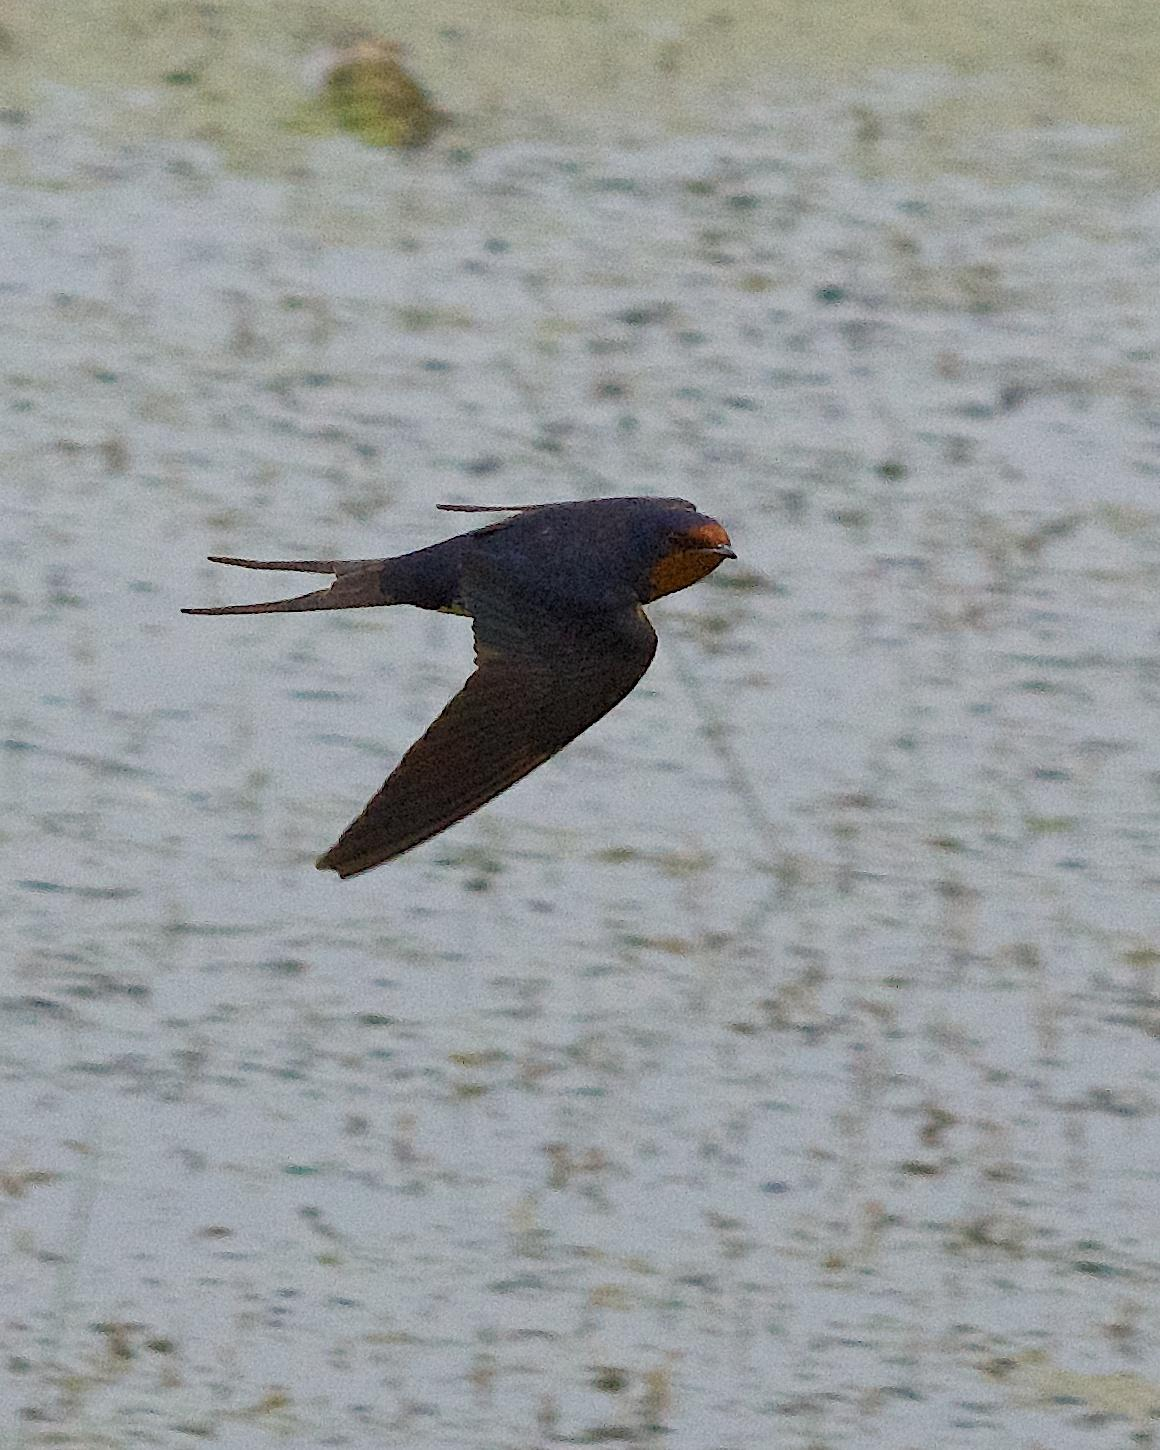 Barn Swallow Photo by Gerald Hoekstra